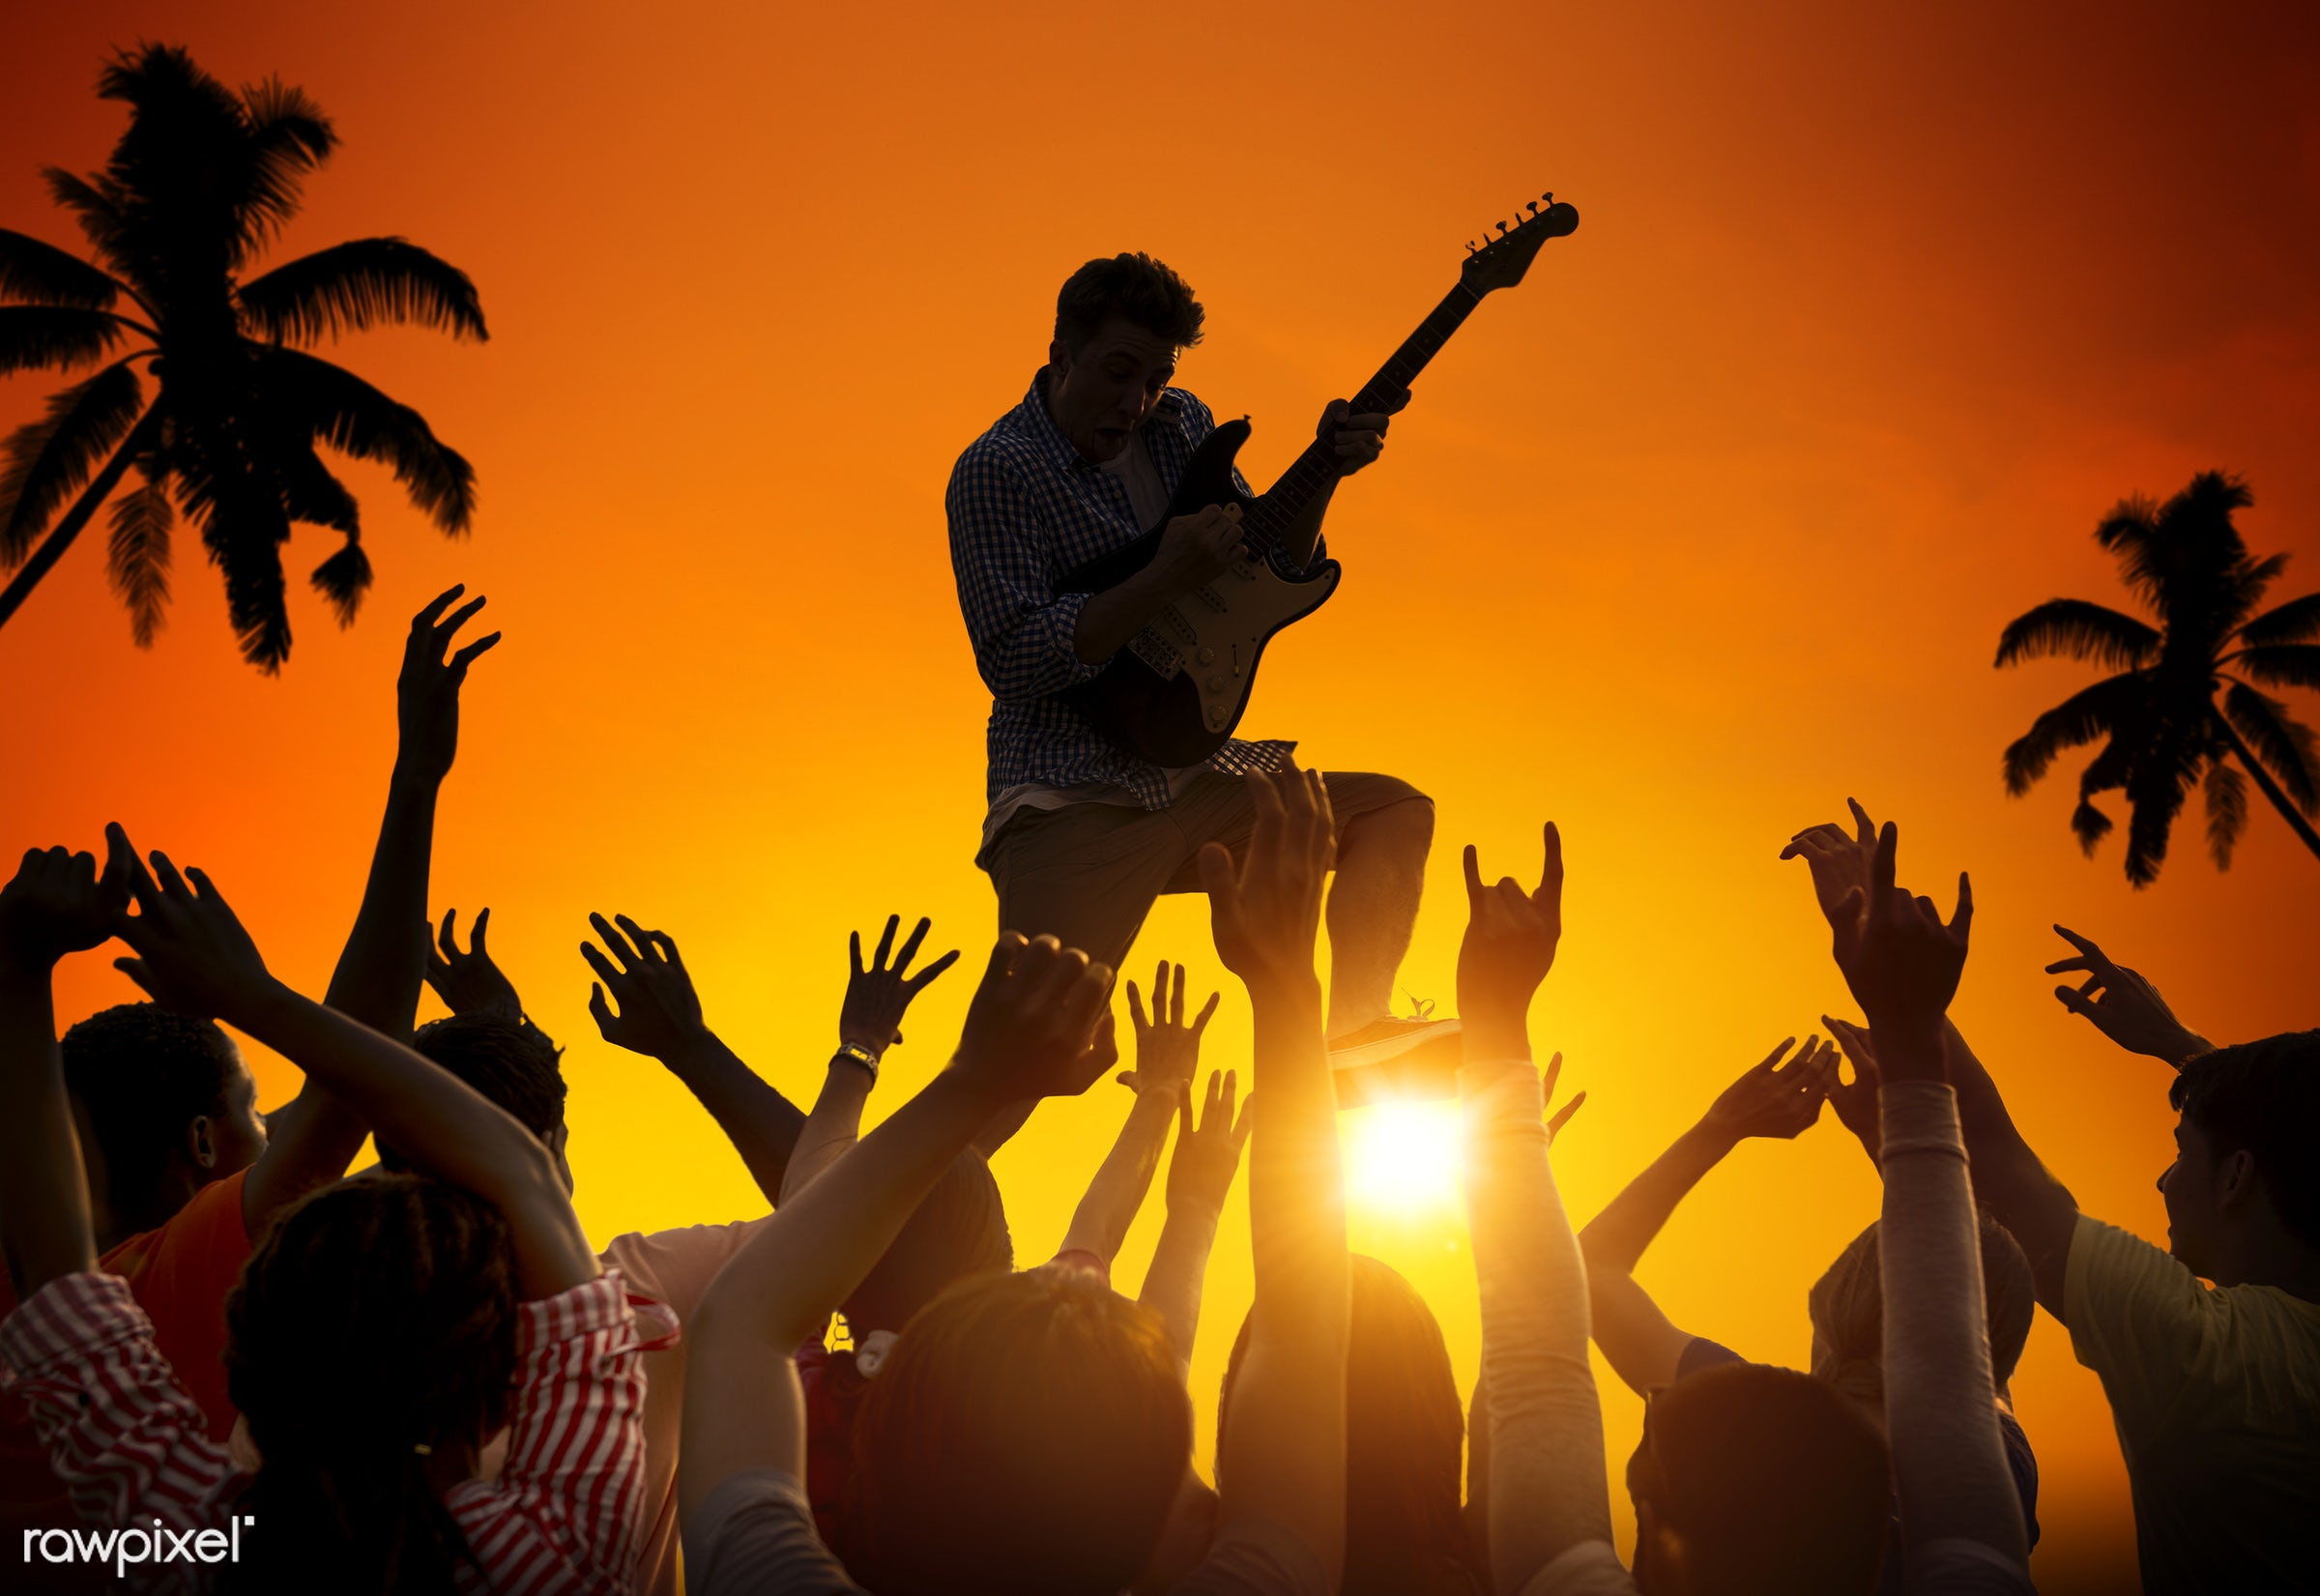 applauding, dusk, arms outstretched, arms raised, audience, beach, celebration, cheerful, cheering, coconut palm tree,...